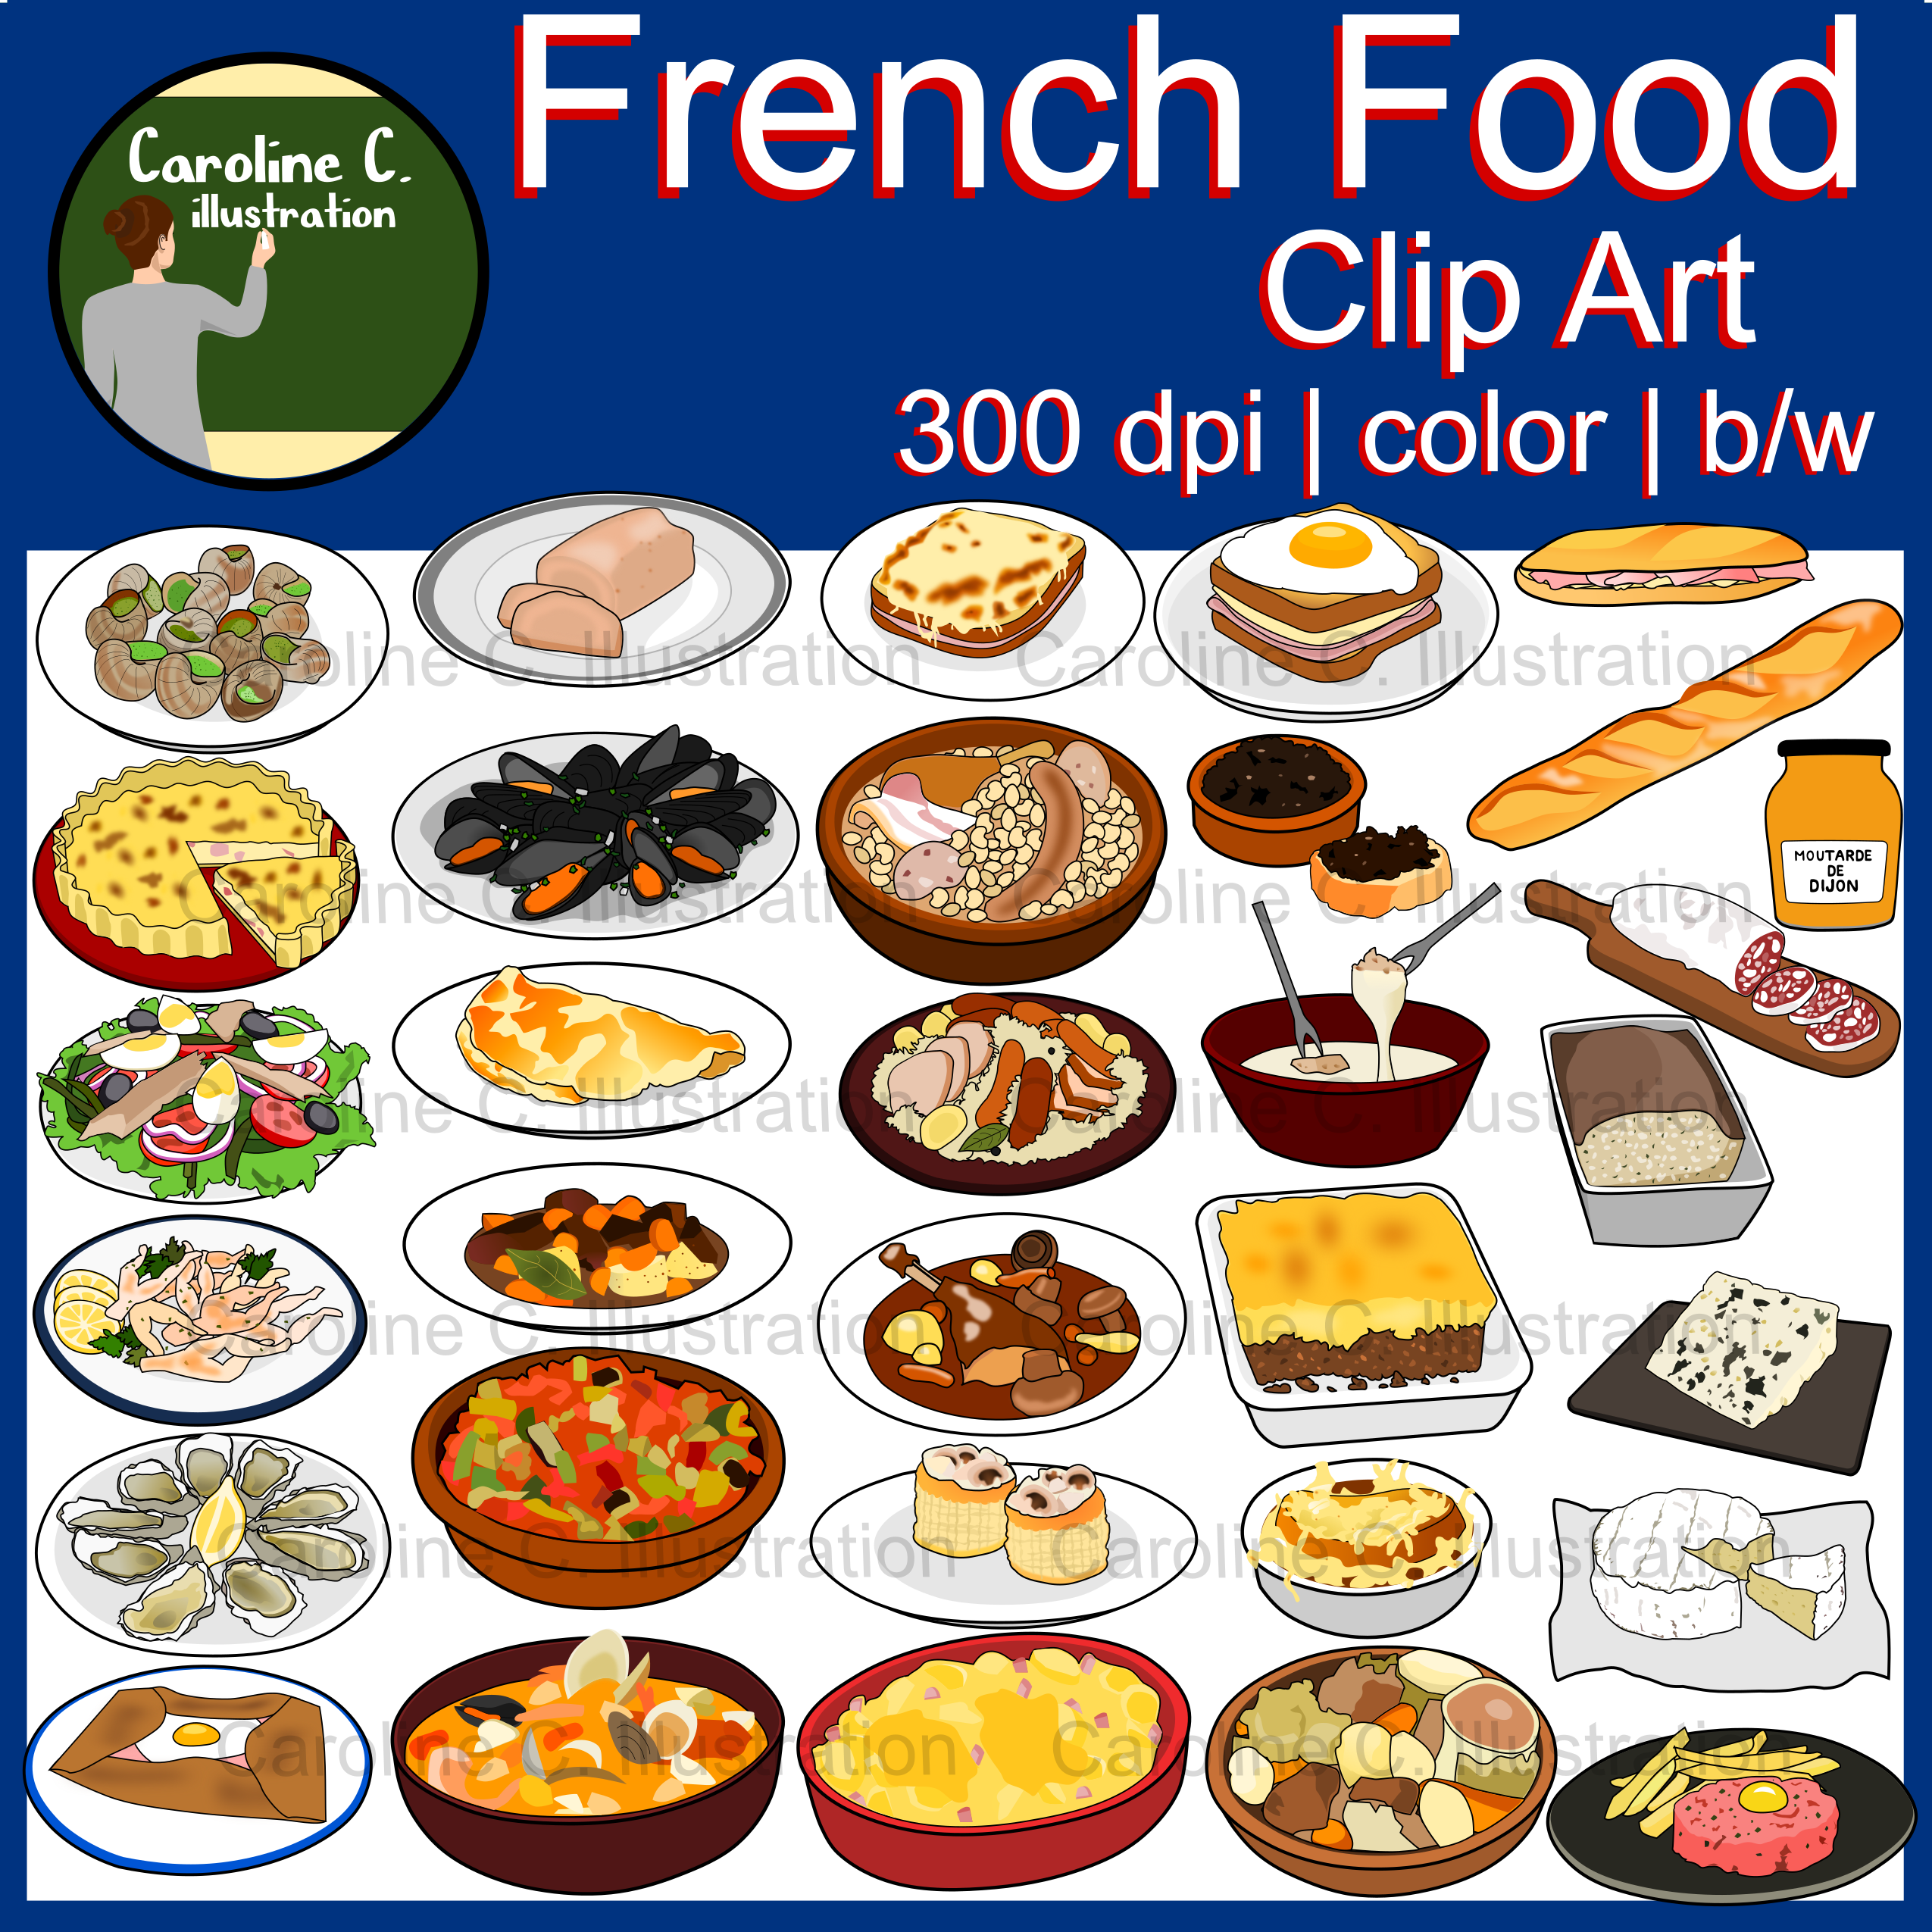 French Food Clip Art Food Clips Clip Art French Food